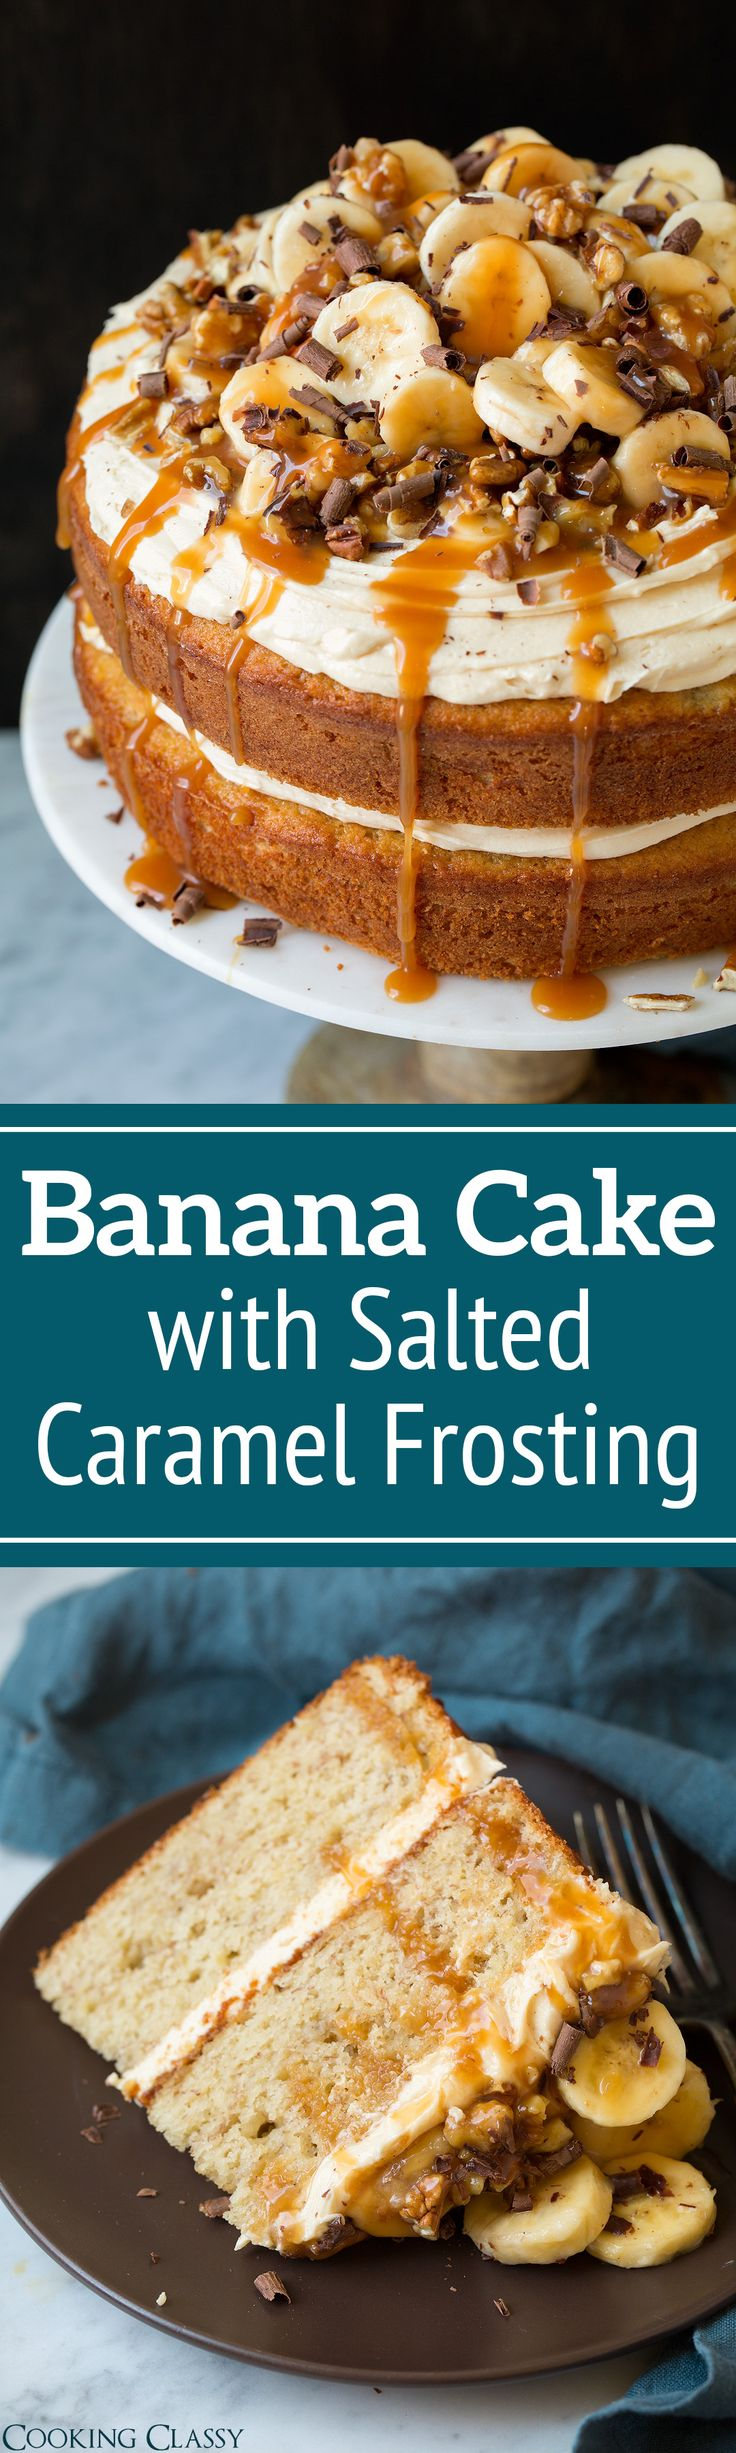 Banana Cake with Salted Caramel Frosting - Cooking Classy